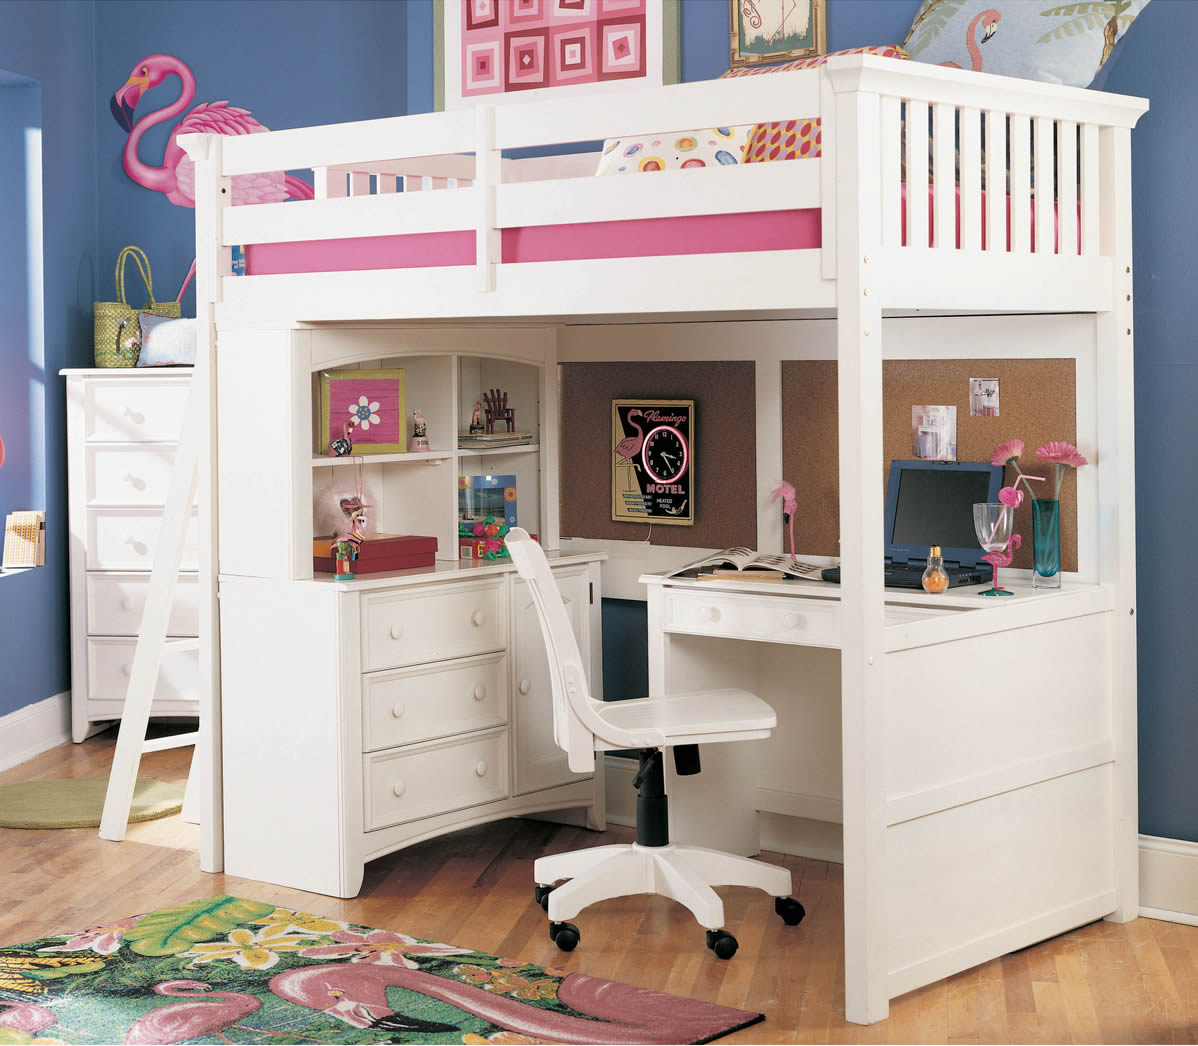 Bunk bed with stairs and desk plans - Loft Bed With Desk Underneath Additionally Bunk Bed With Stairs Plans